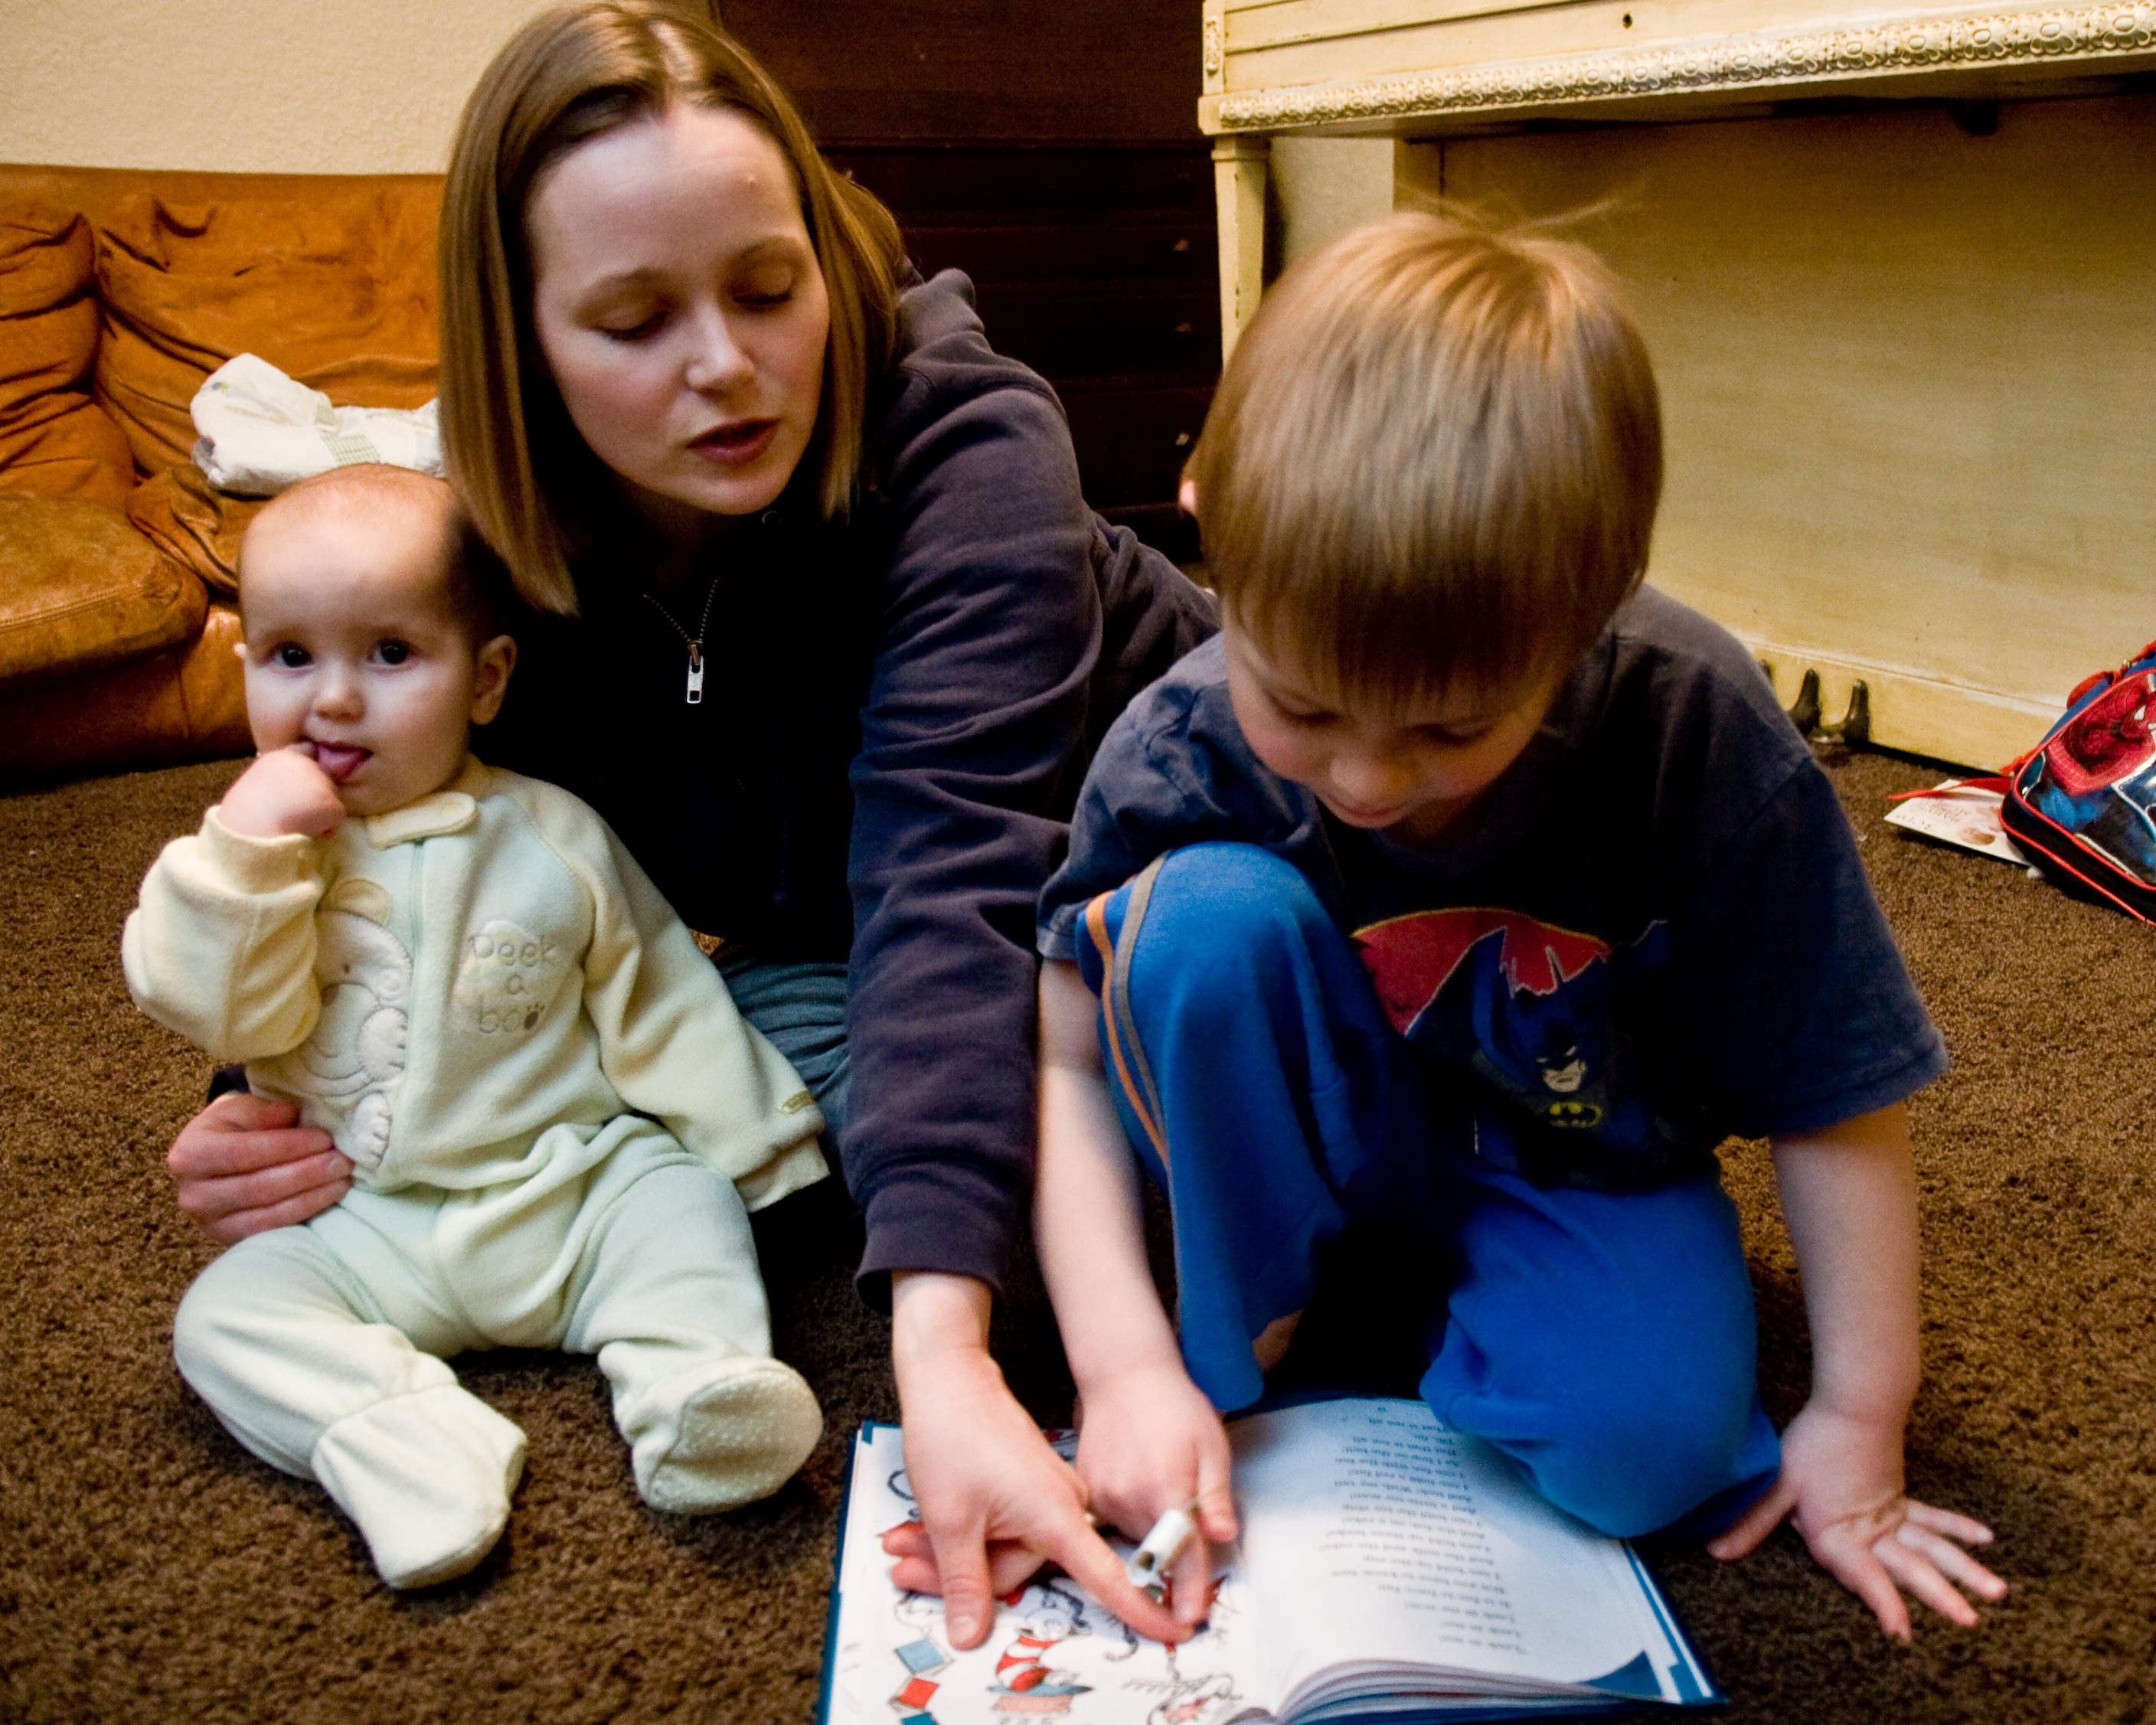 Helicopter Parenting May Negatively Affect Childrens Emotional >> Helicopter Parenting Negatively Influences Children The